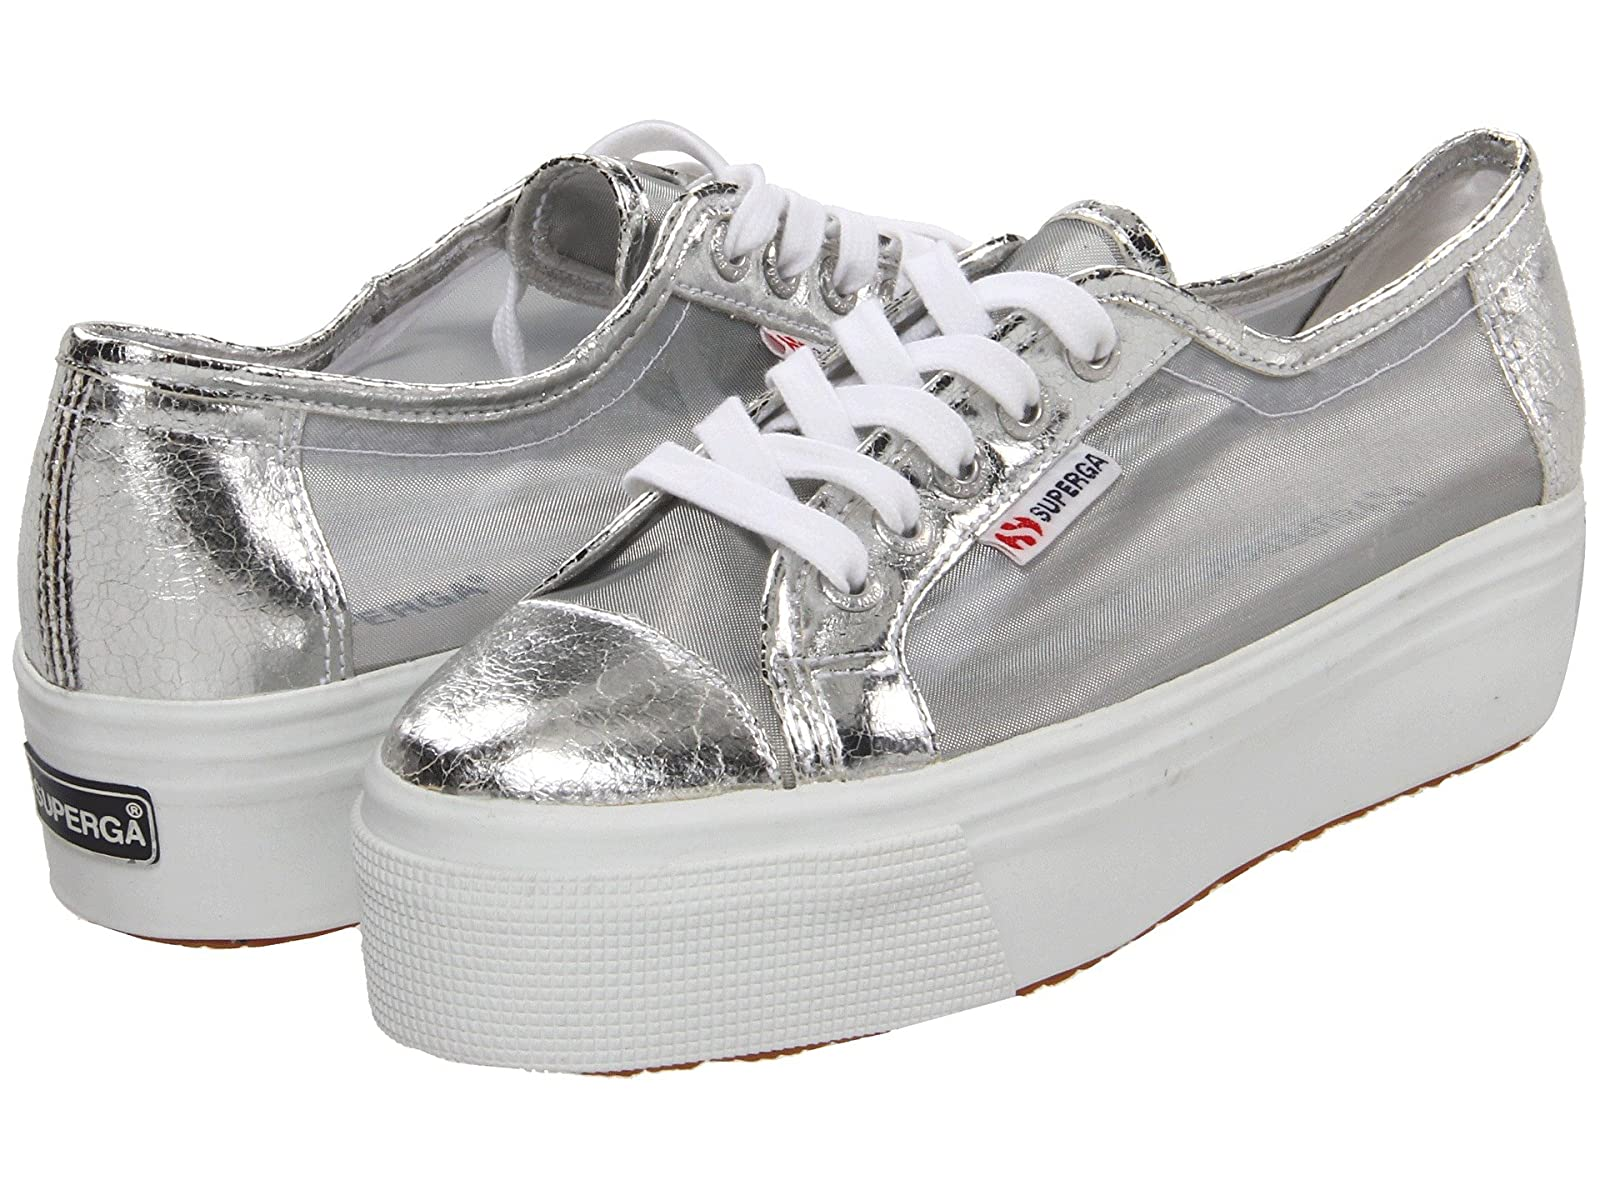 Superga 2790 NETWCheap and distinctive eye-catching shoes